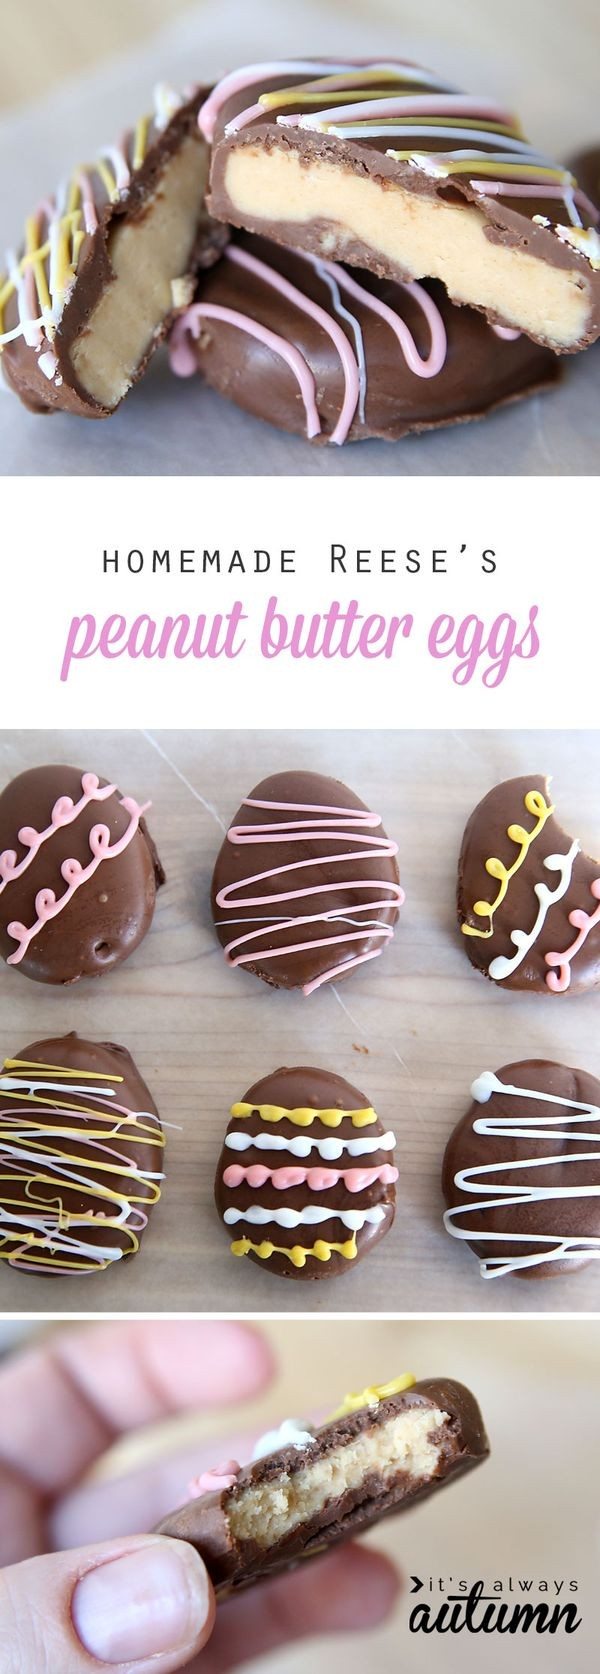 Get the recipe Homemade Reese's Peanut Butter Eggs @recipes_to_go